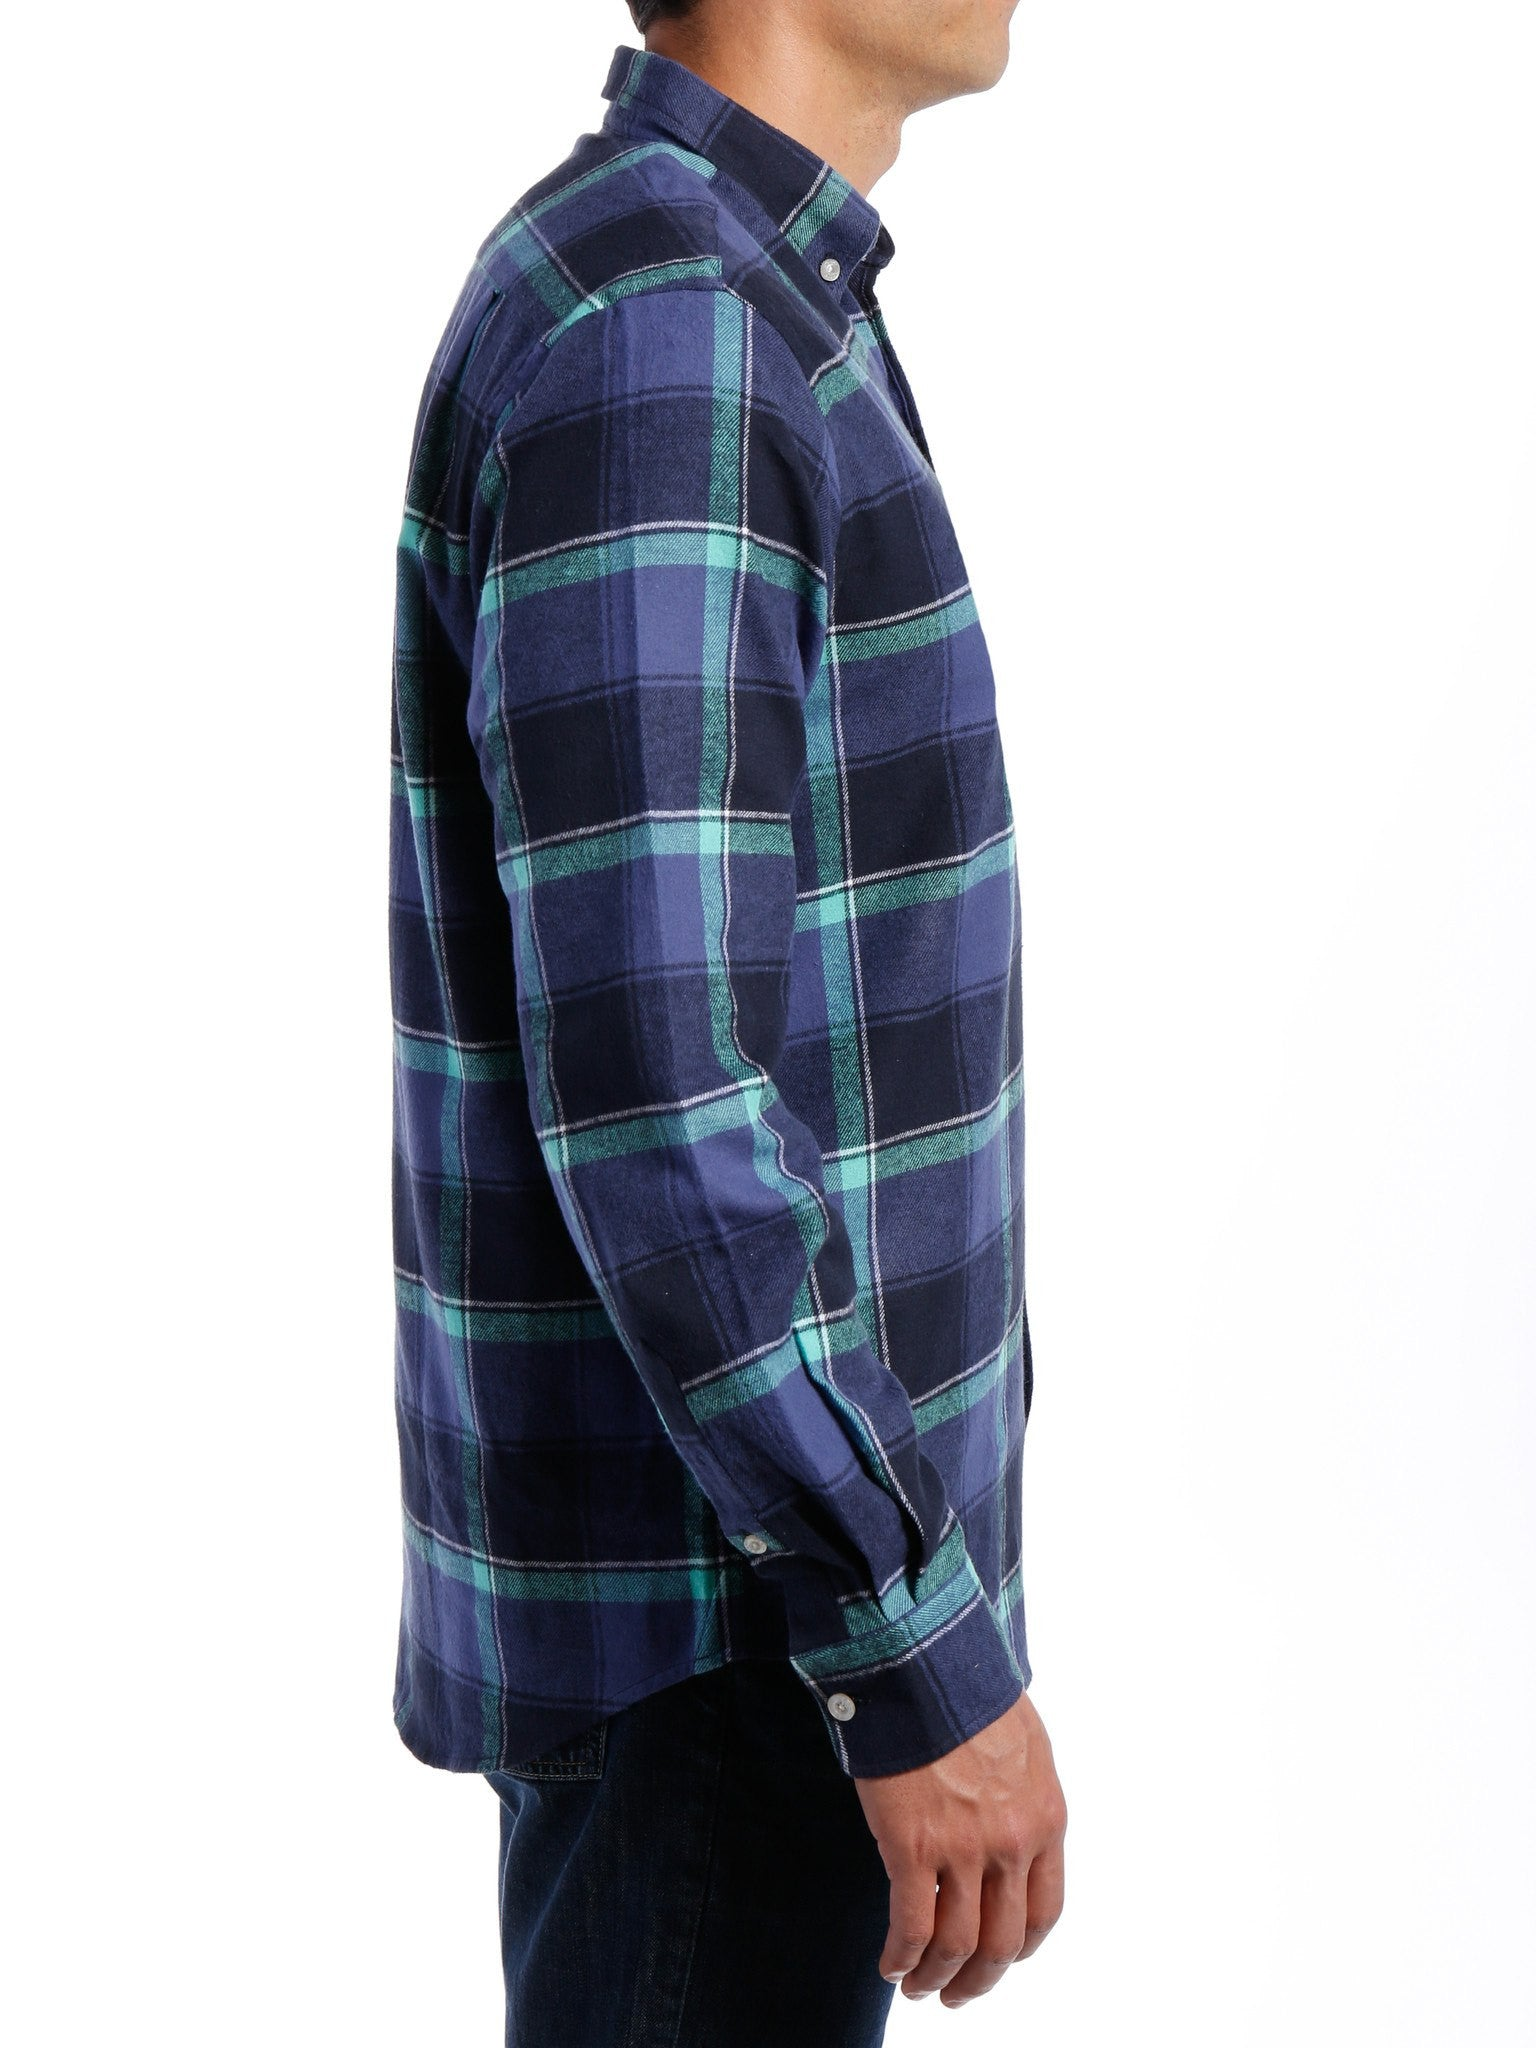 Indigo-Green Plaid